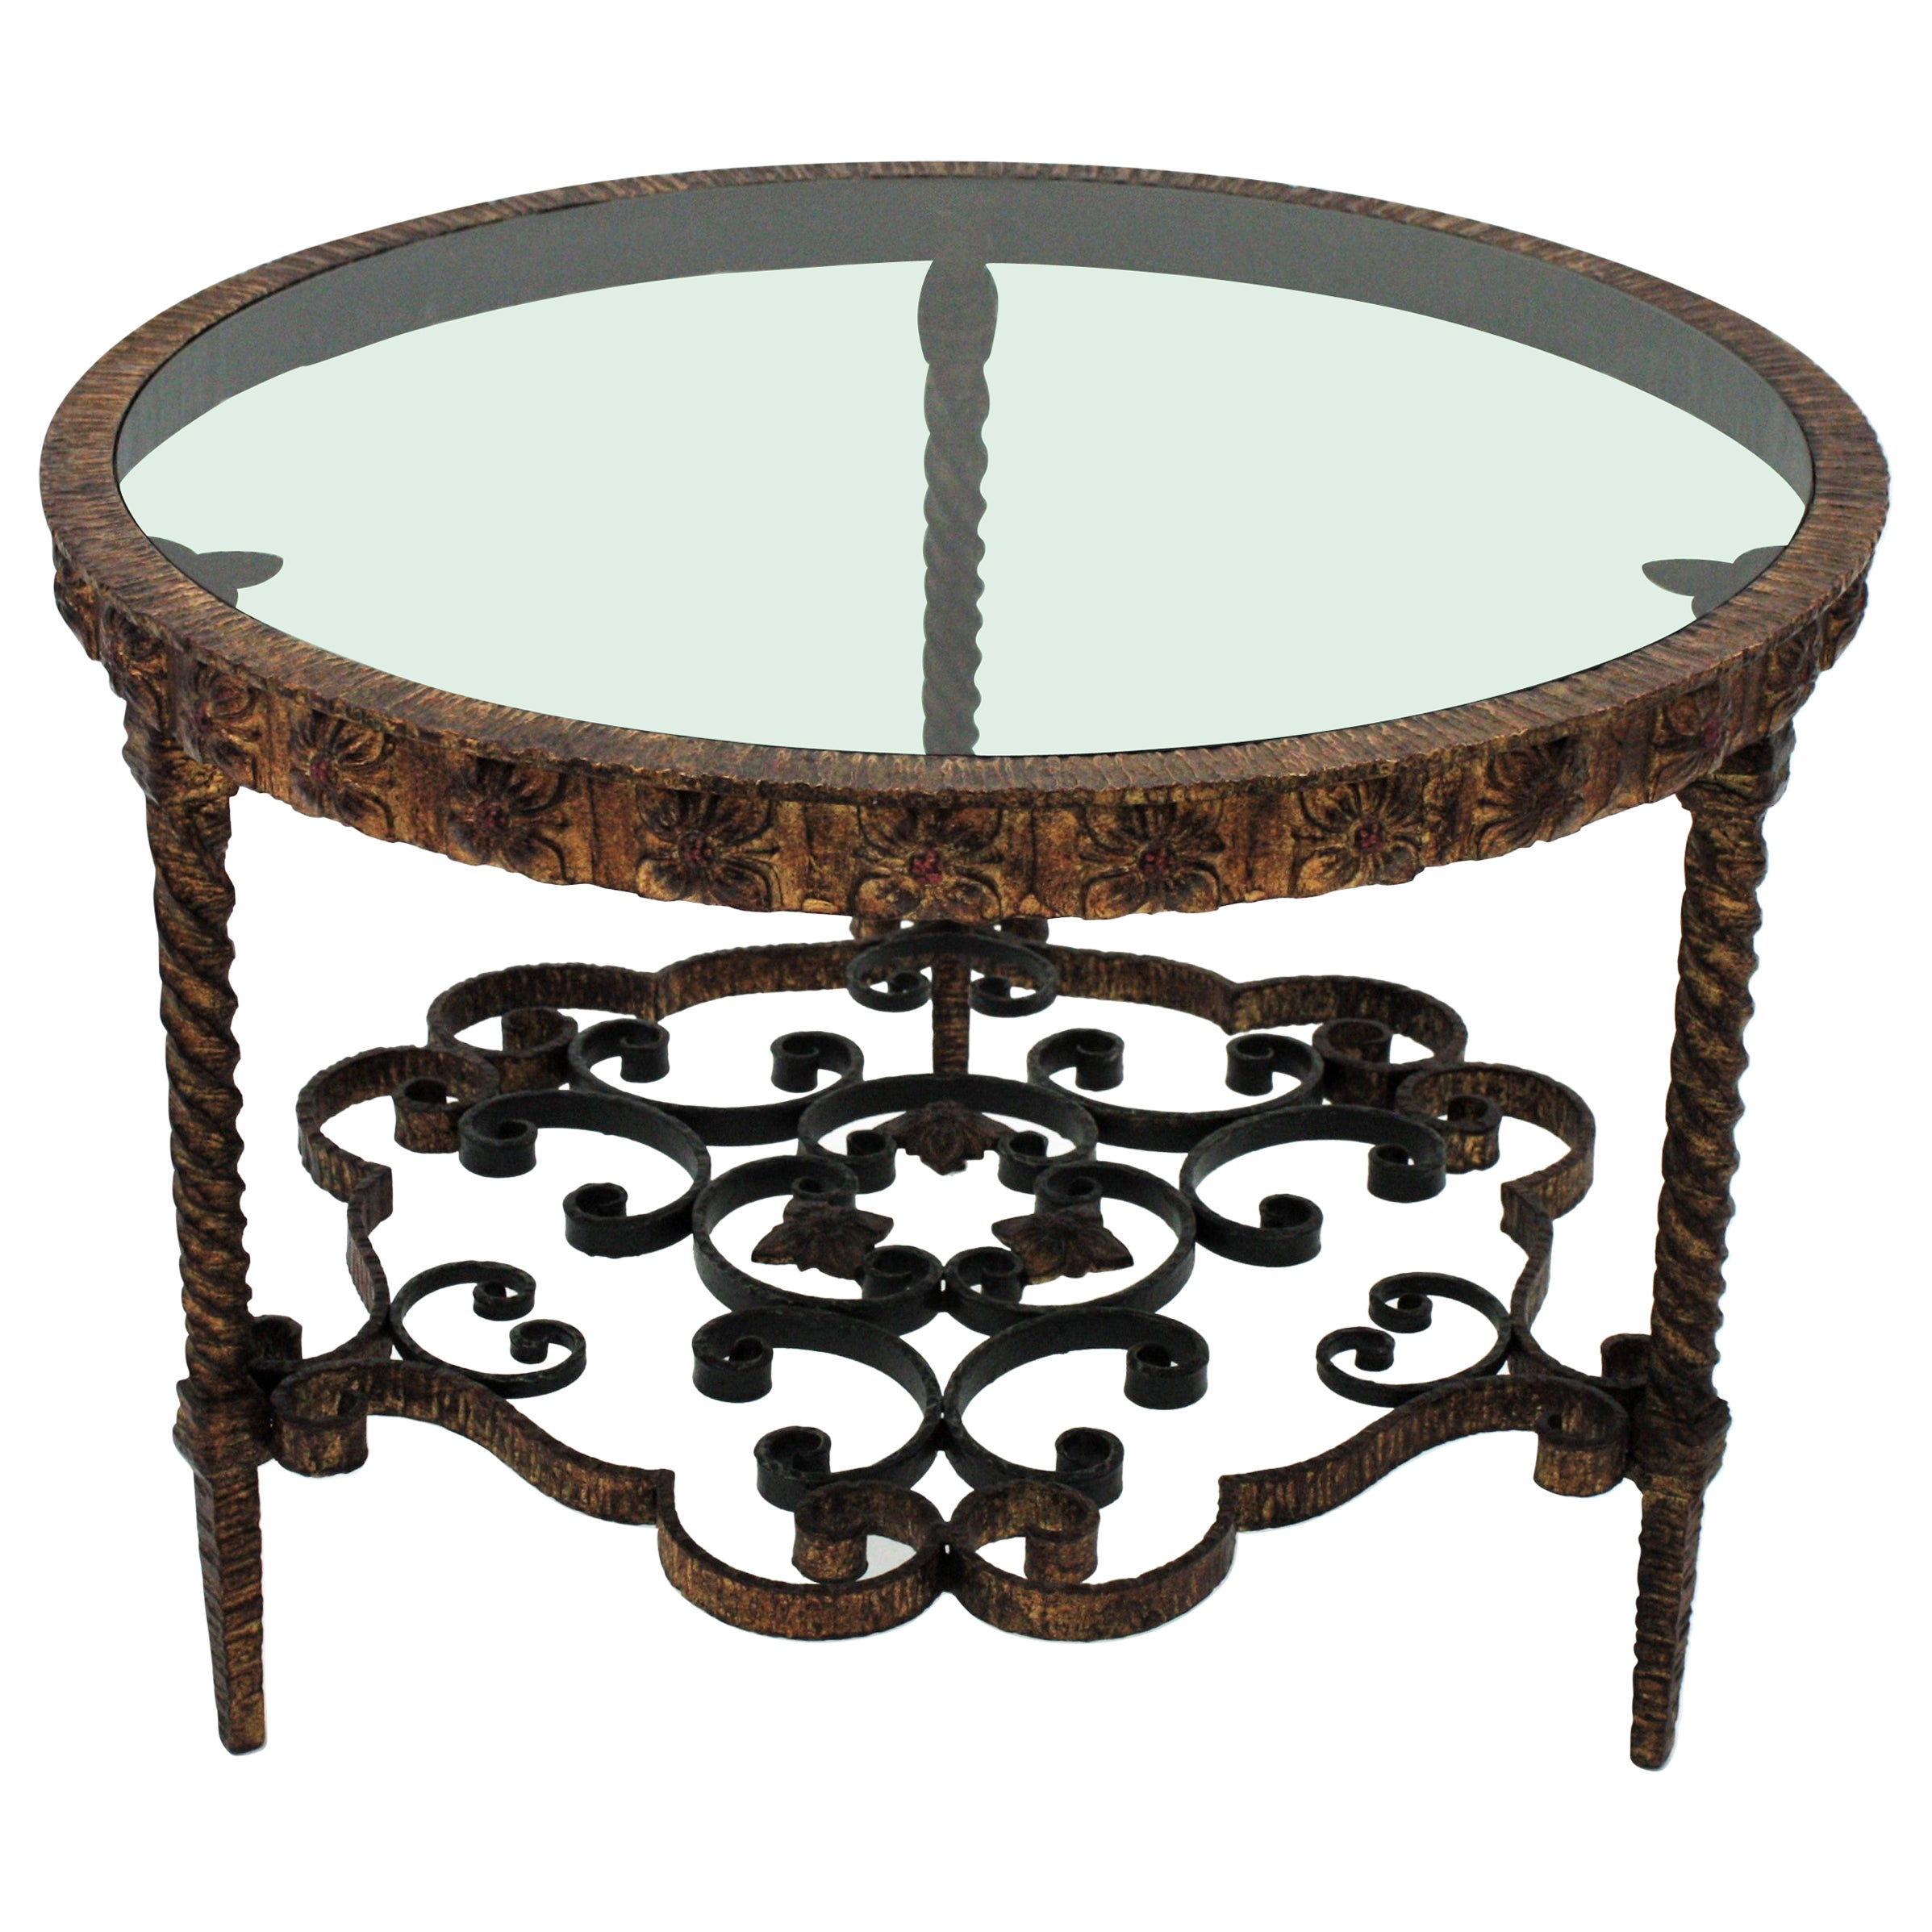 Spanish Round Coffee Table in Wrought Gilt Iron with Smoked Glass Top, 1940s